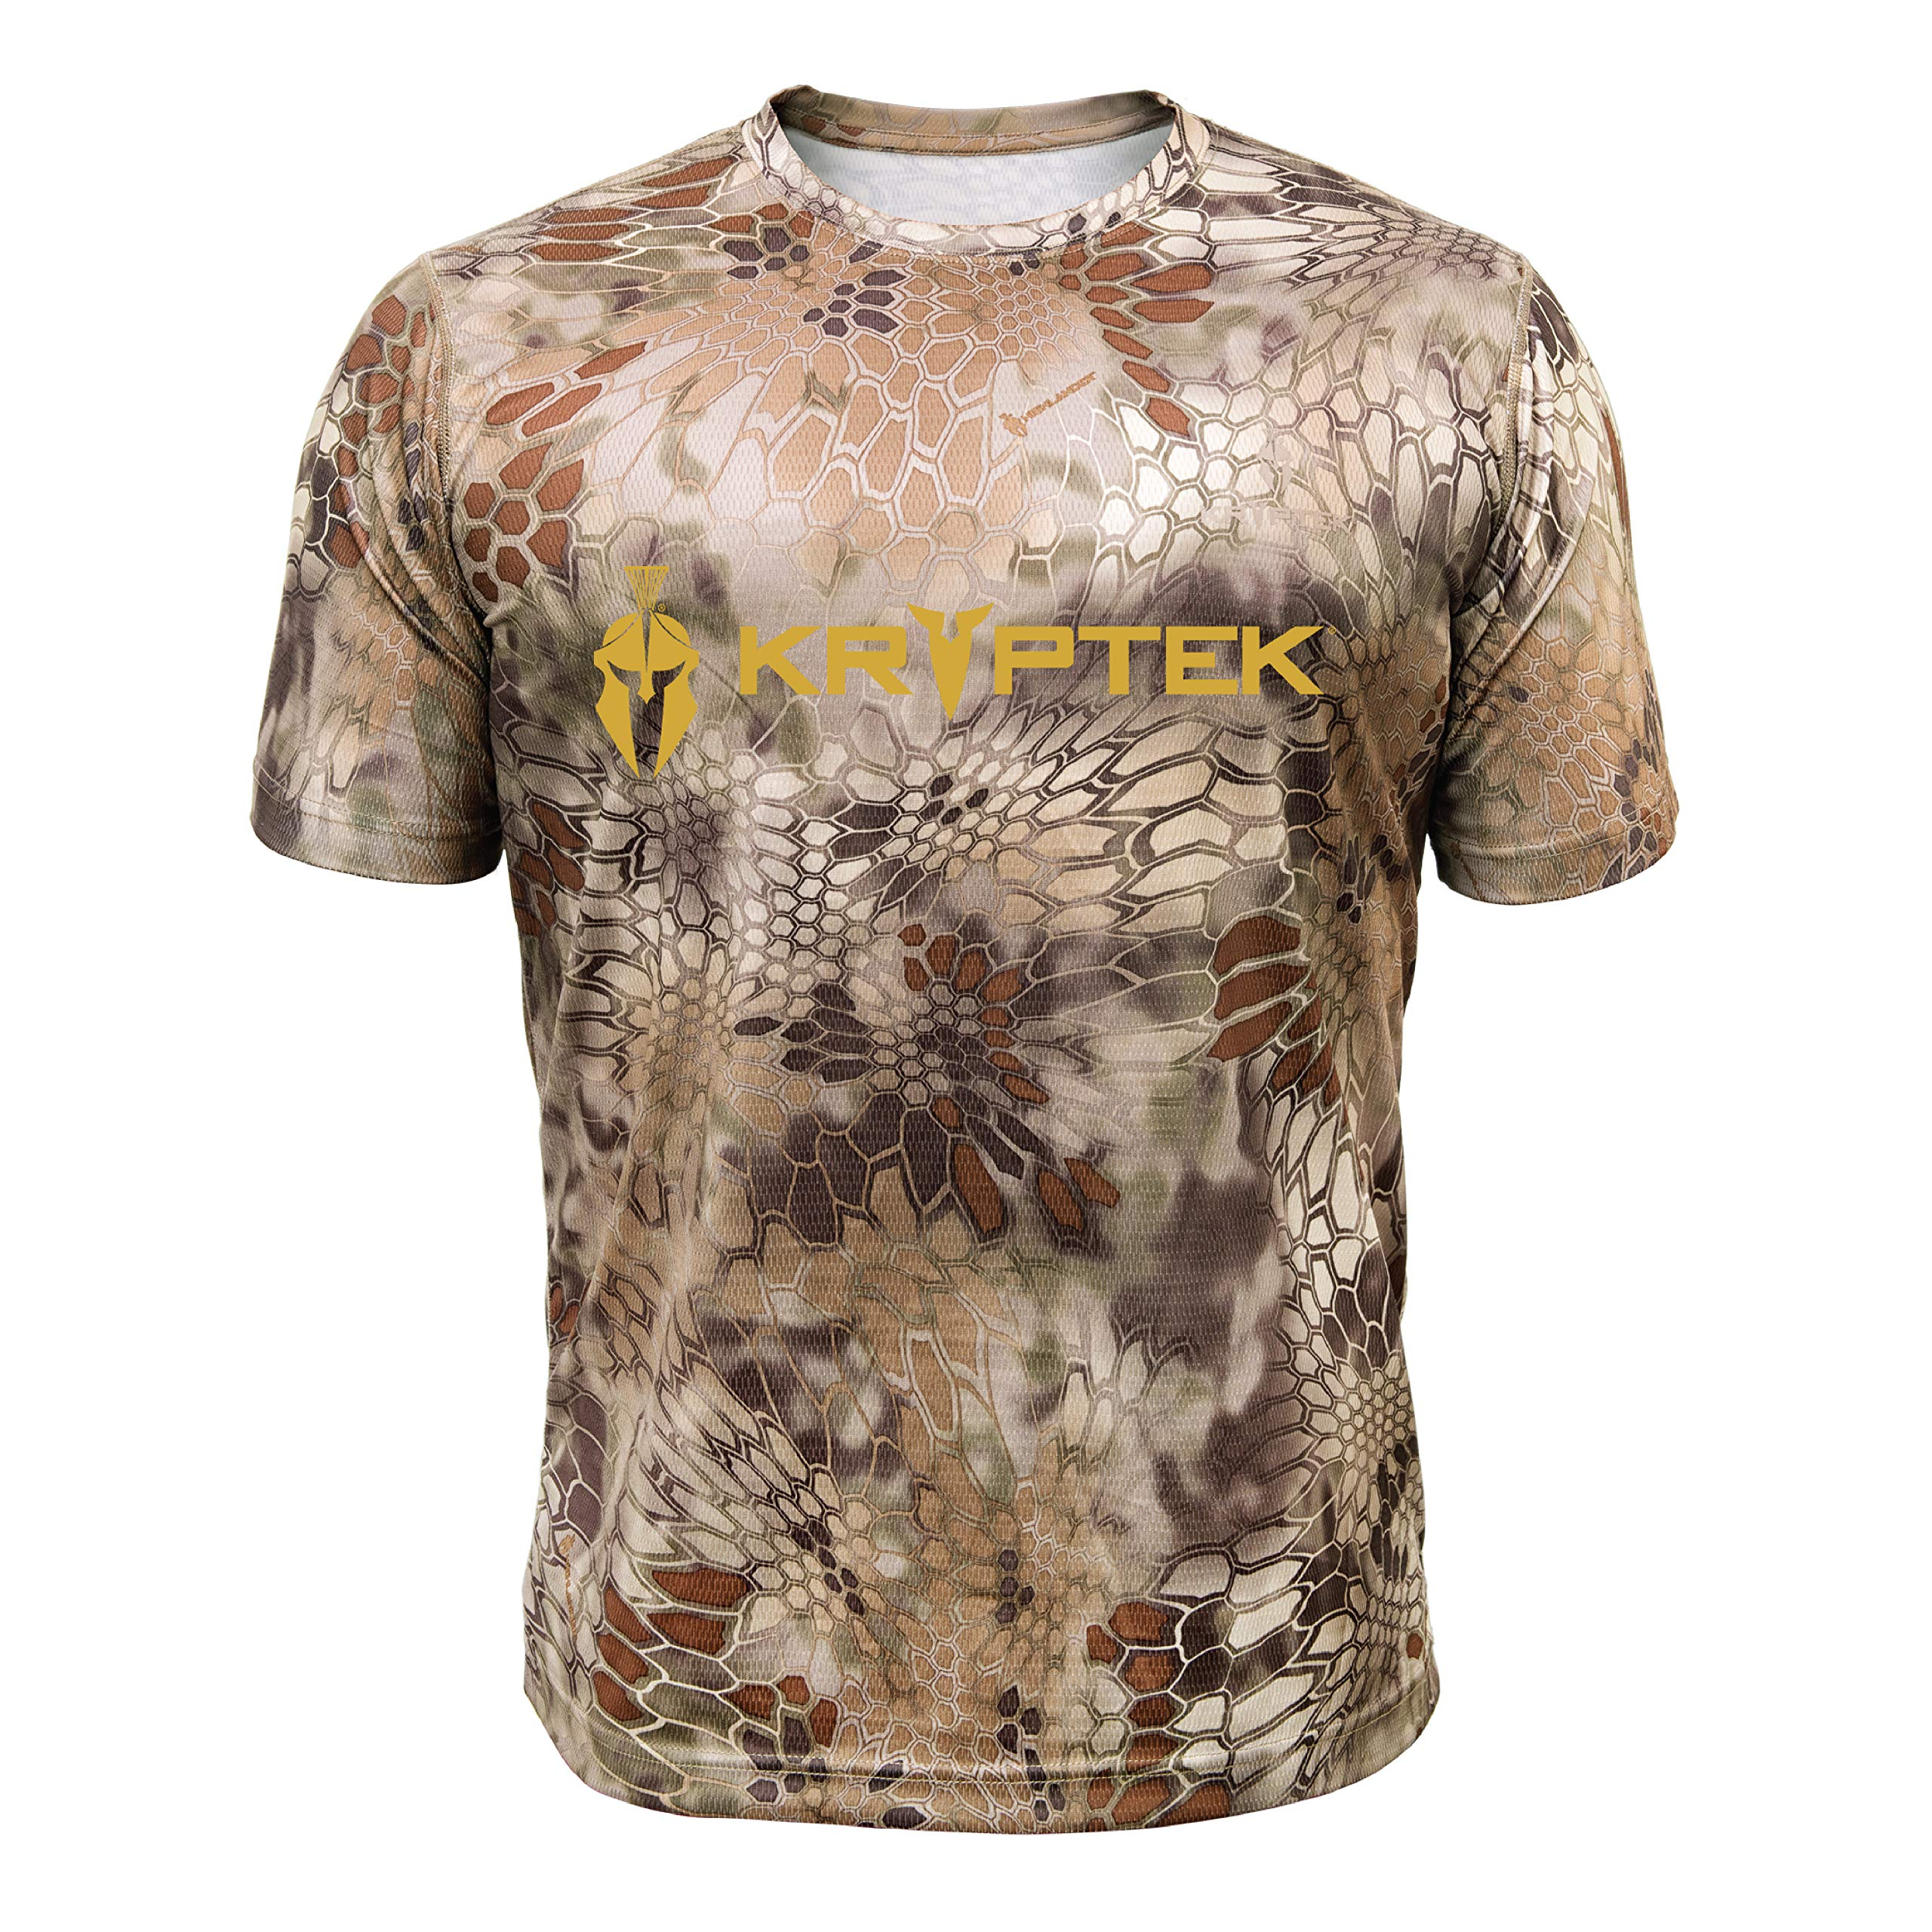 Kryptek Hyperion SS Crew with Logo - Short Sleeve Camo Hunting & Fishing Shirt (K-Ore Collection), Highlander, 3XL by Kryptek